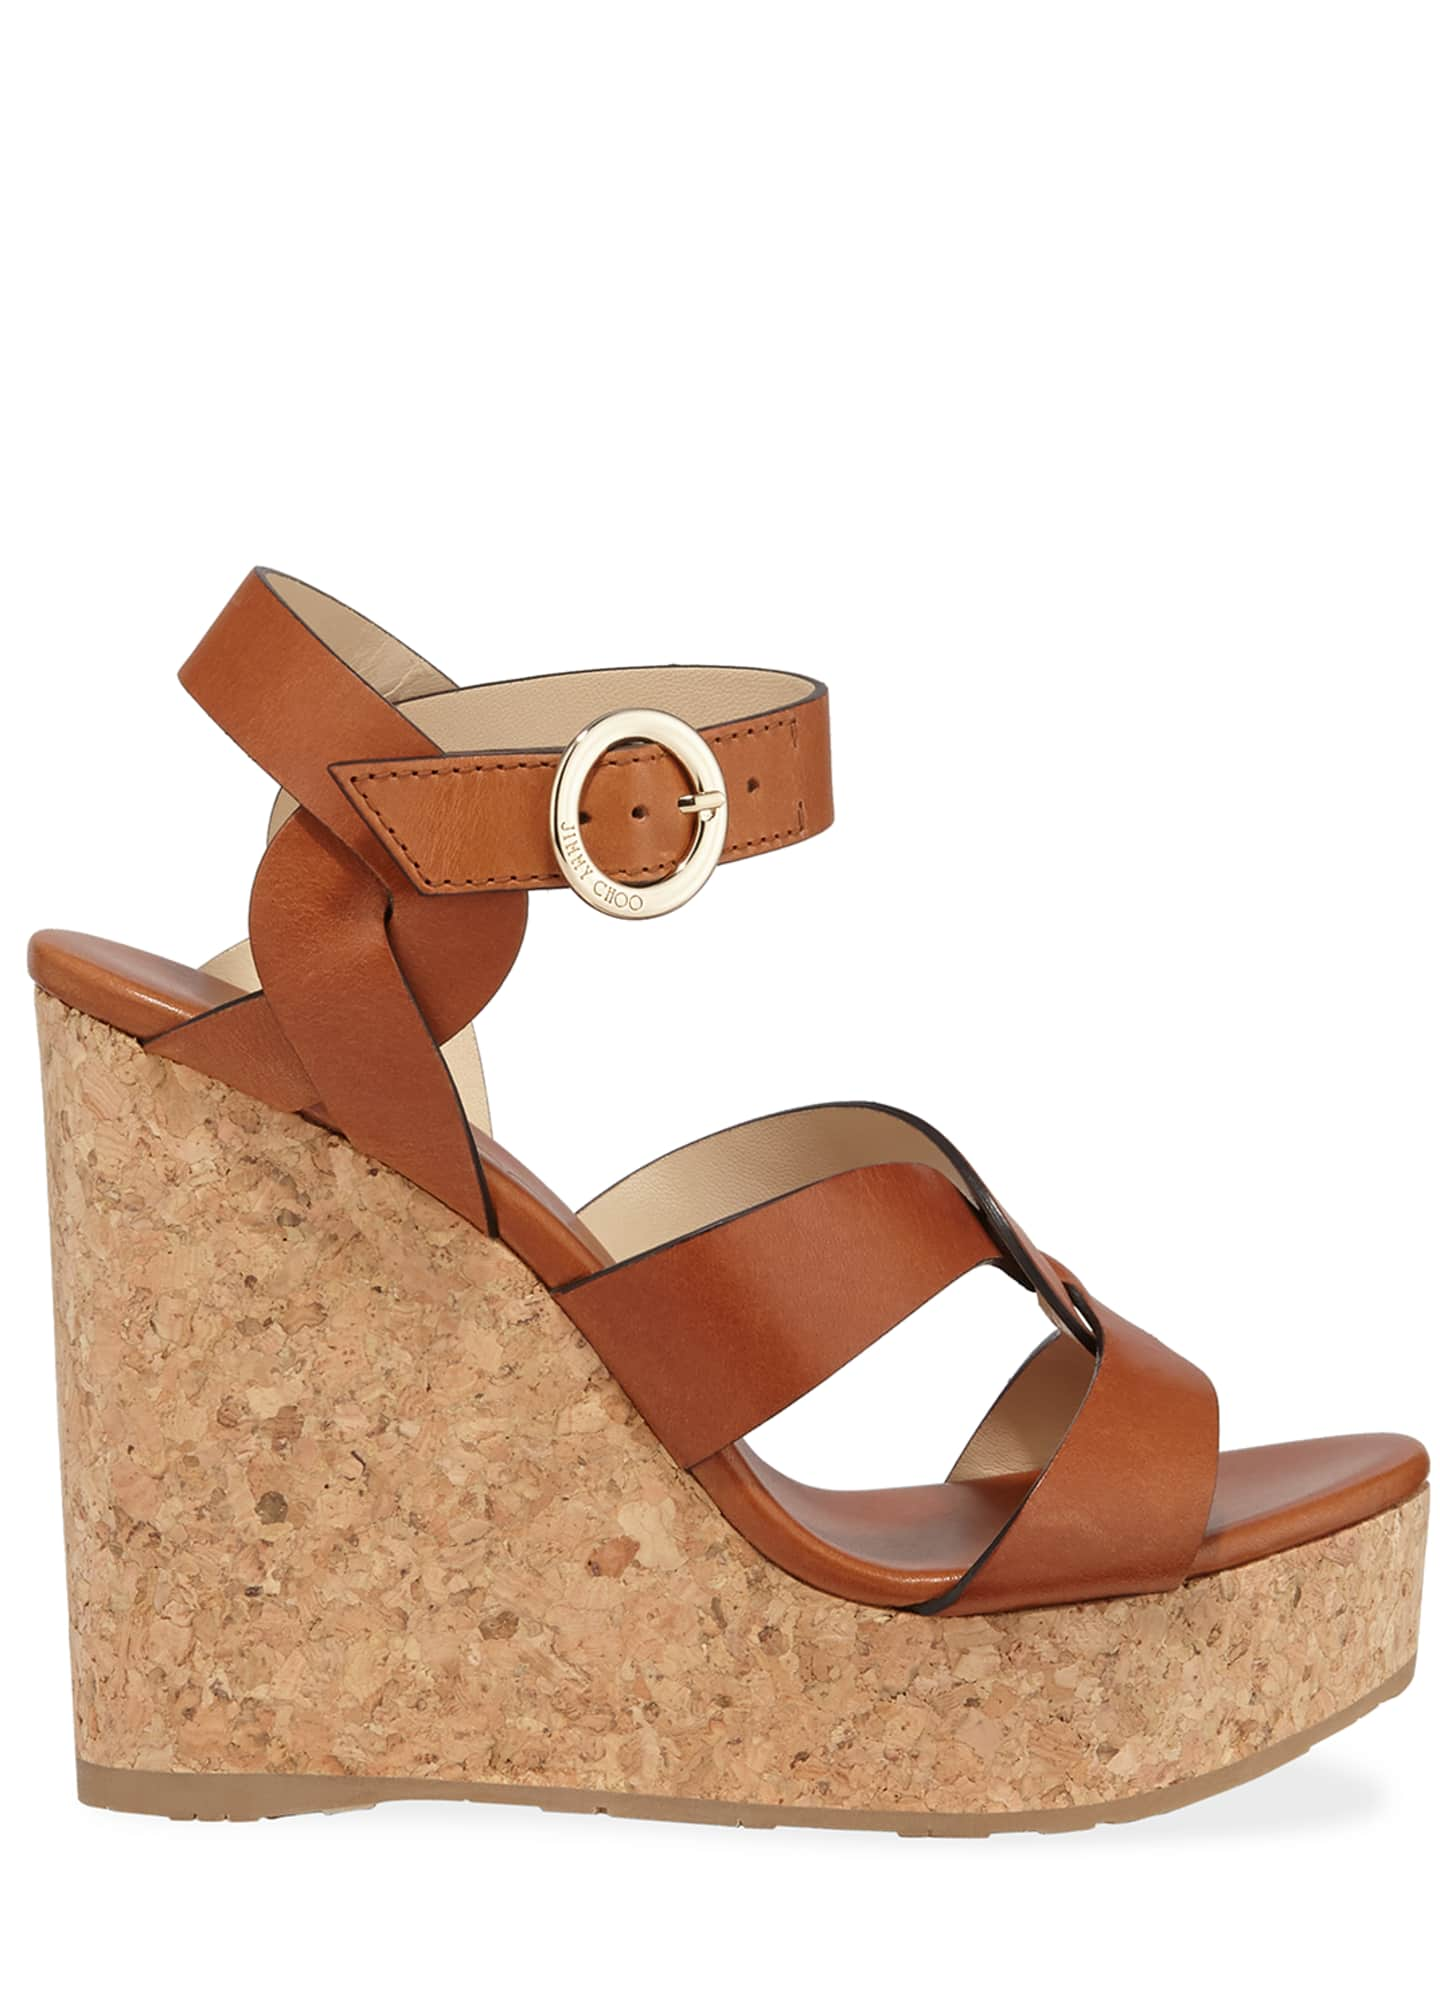 Image 2 of 3: Aleili Leather Cork Wedge Sandals